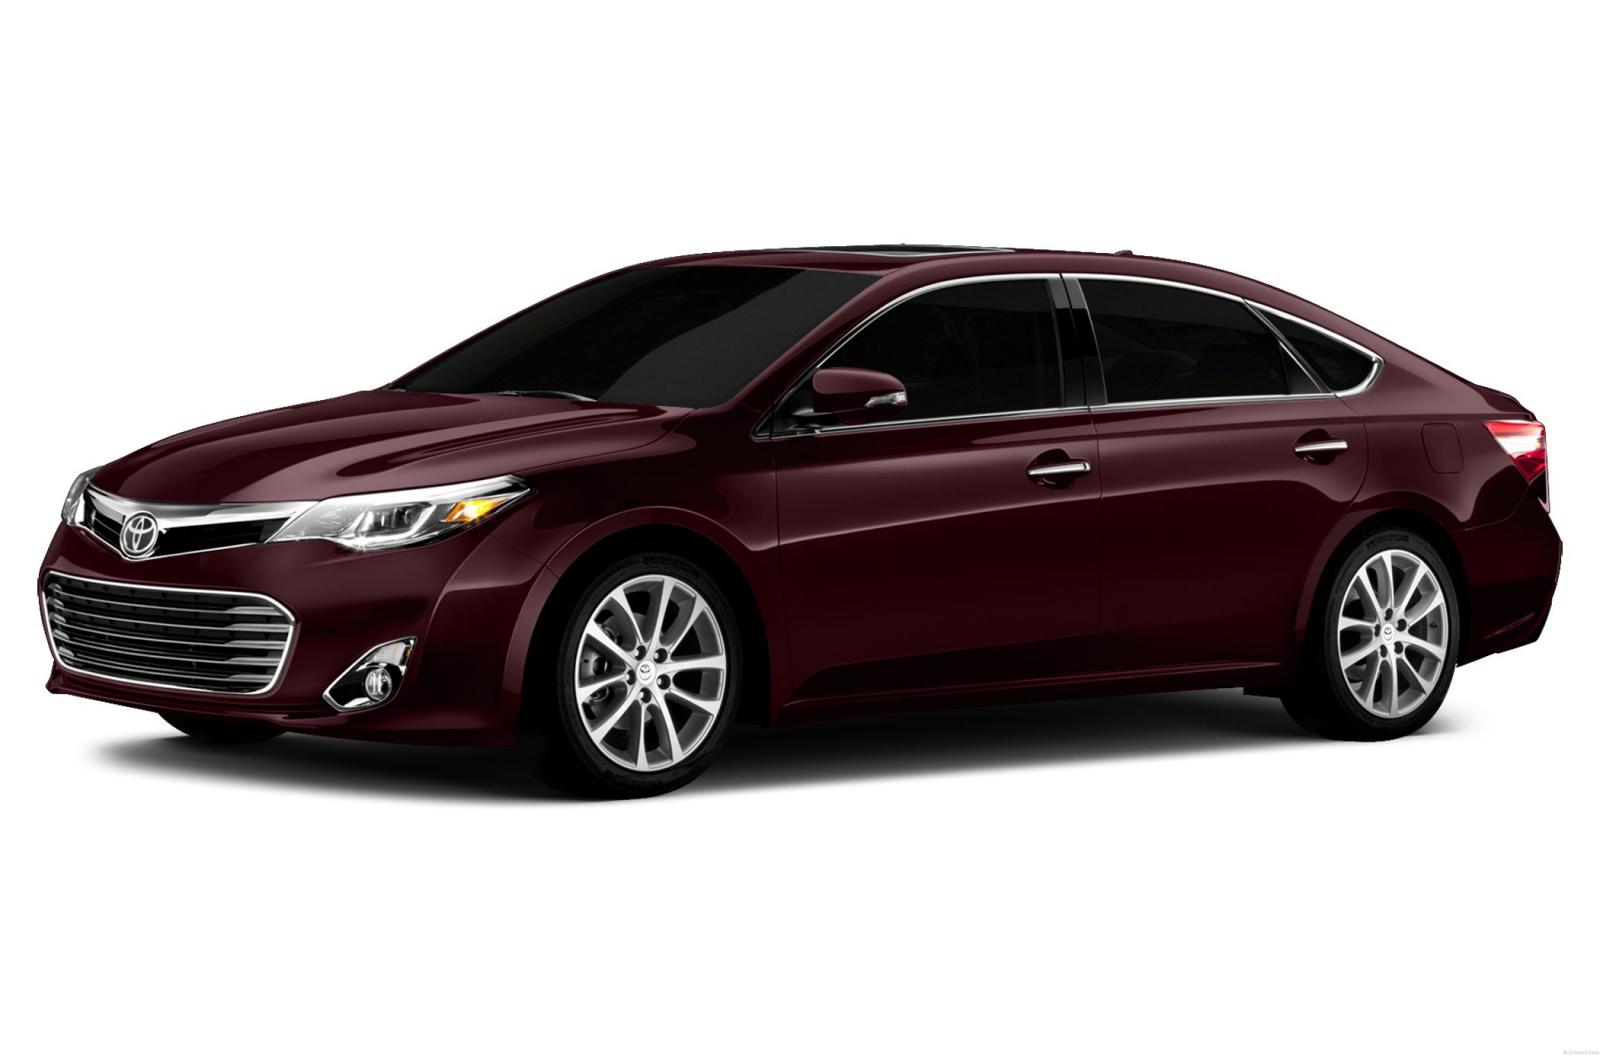 2014 toyota avalon information and photos zombiedrive. Black Bedroom Furniture Sets. Home Design Ideas